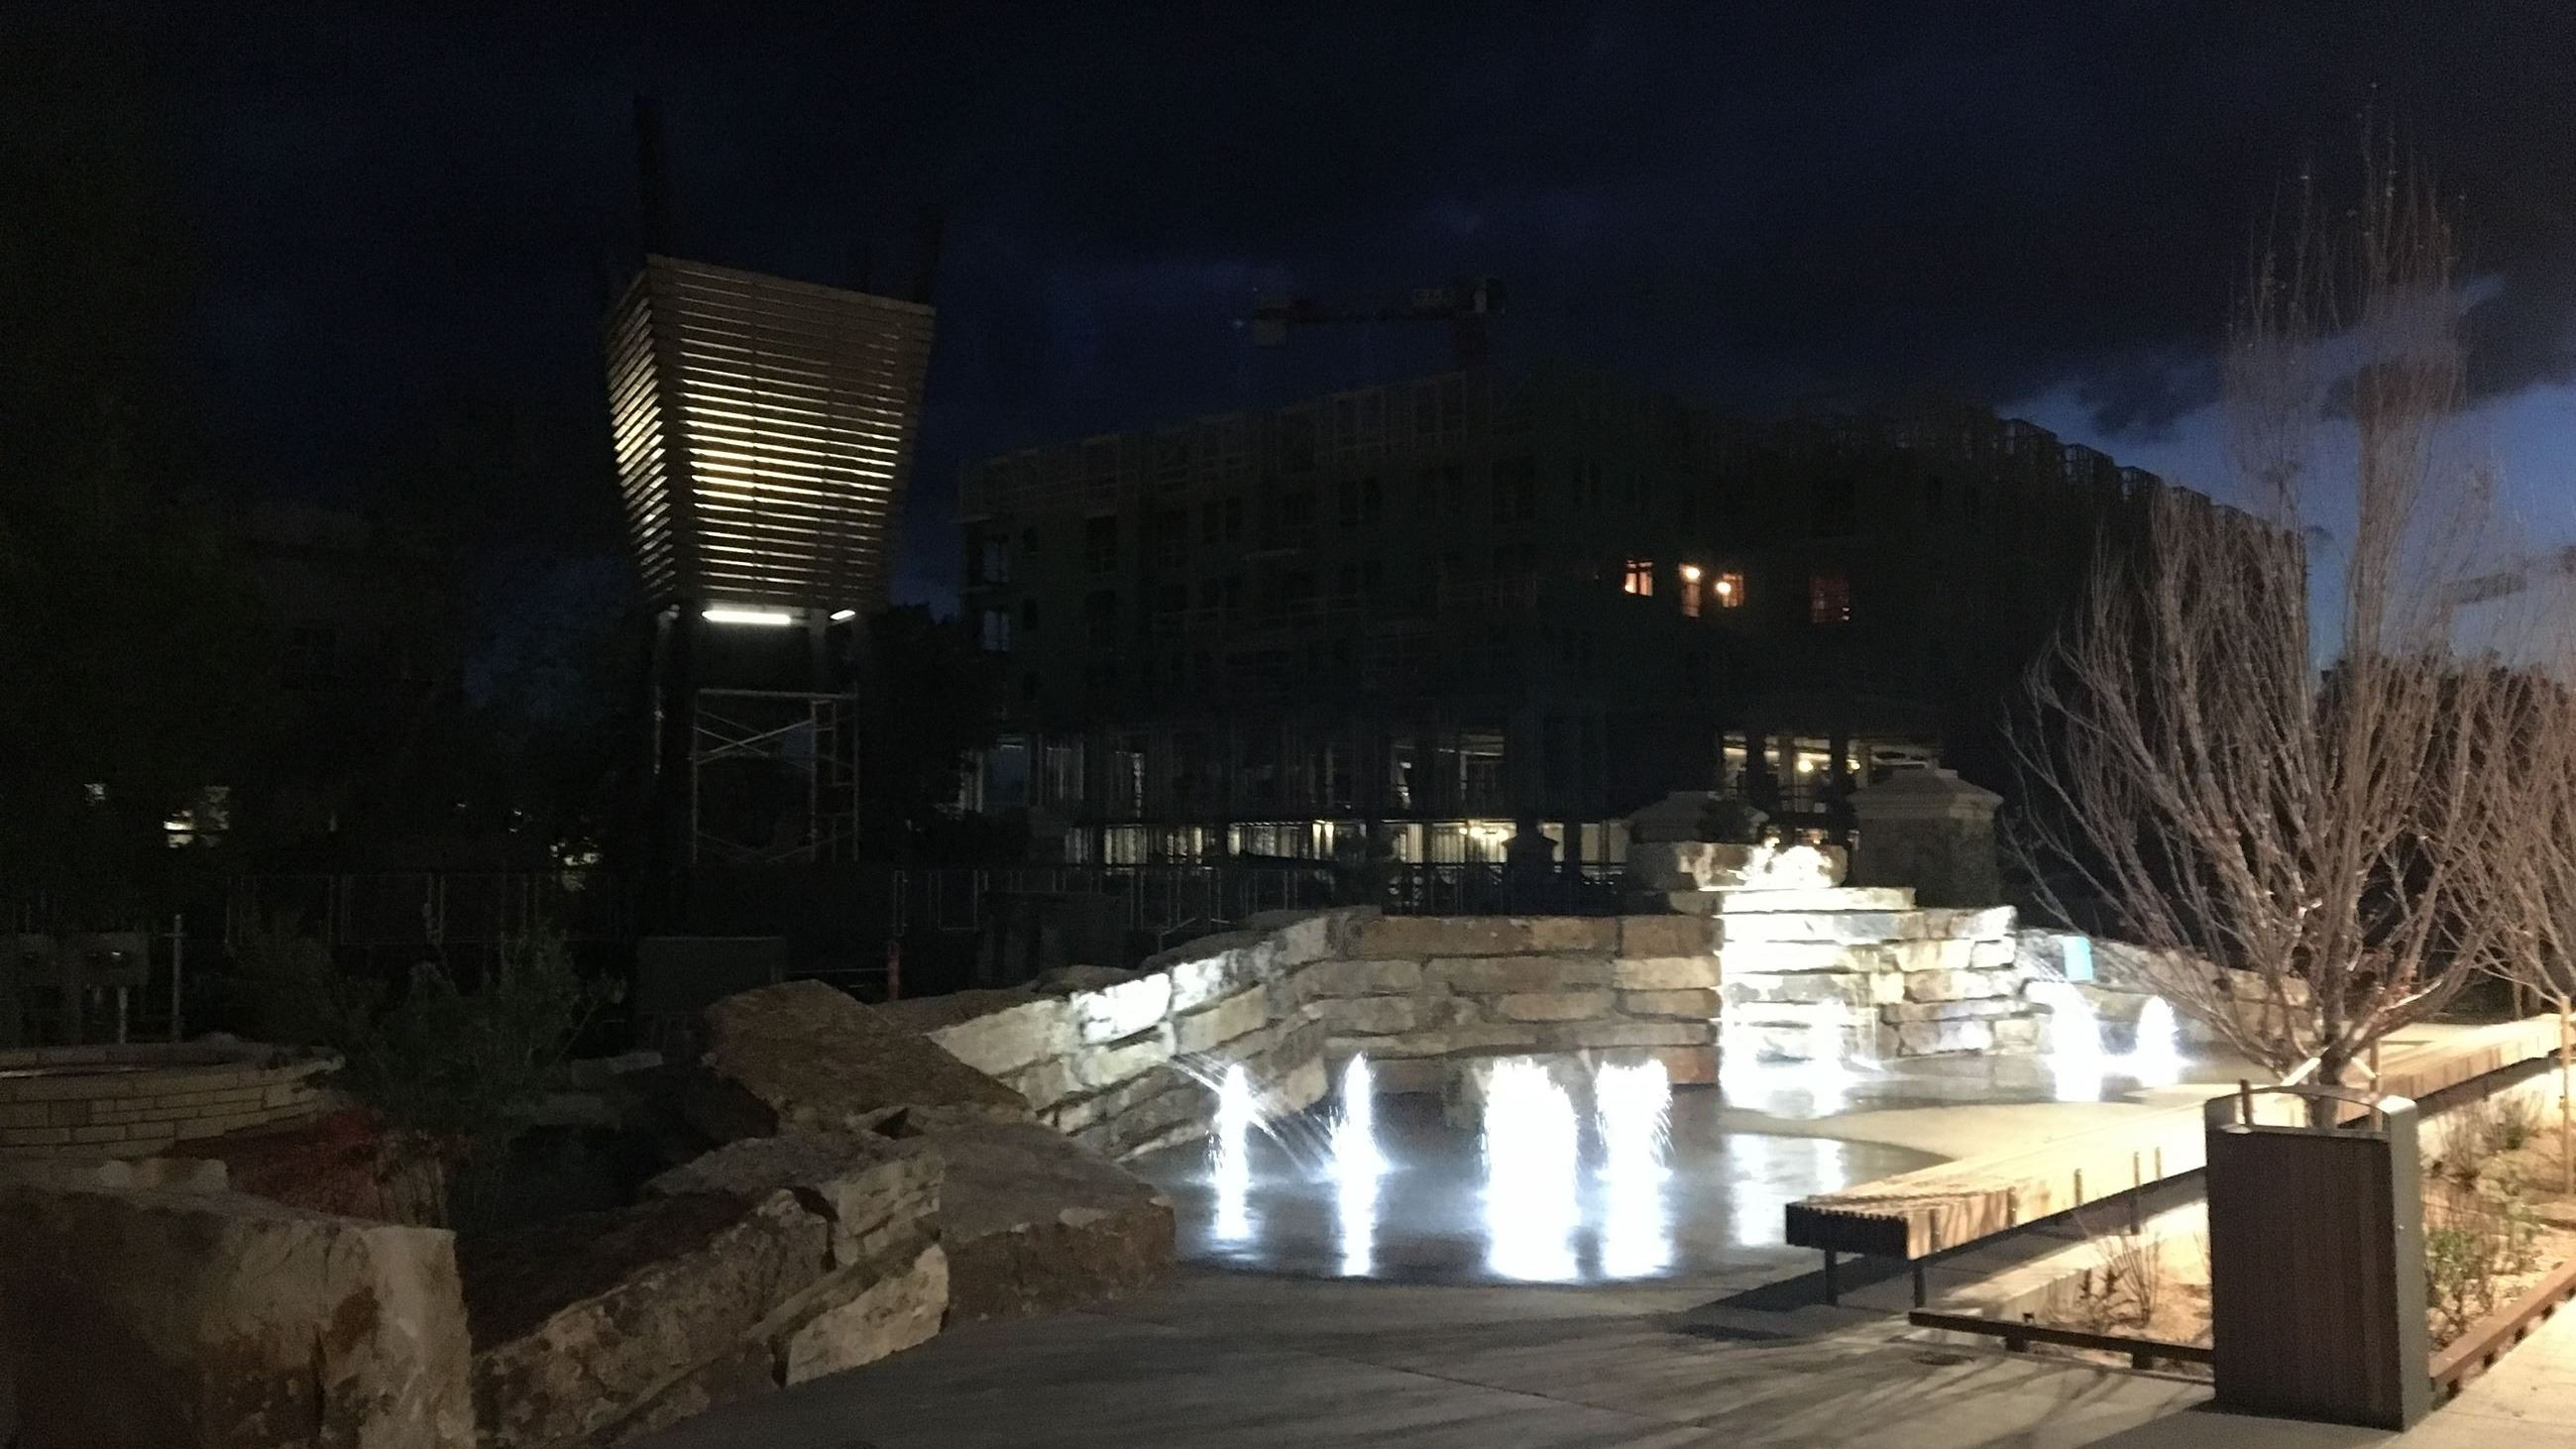 The splash pad at night